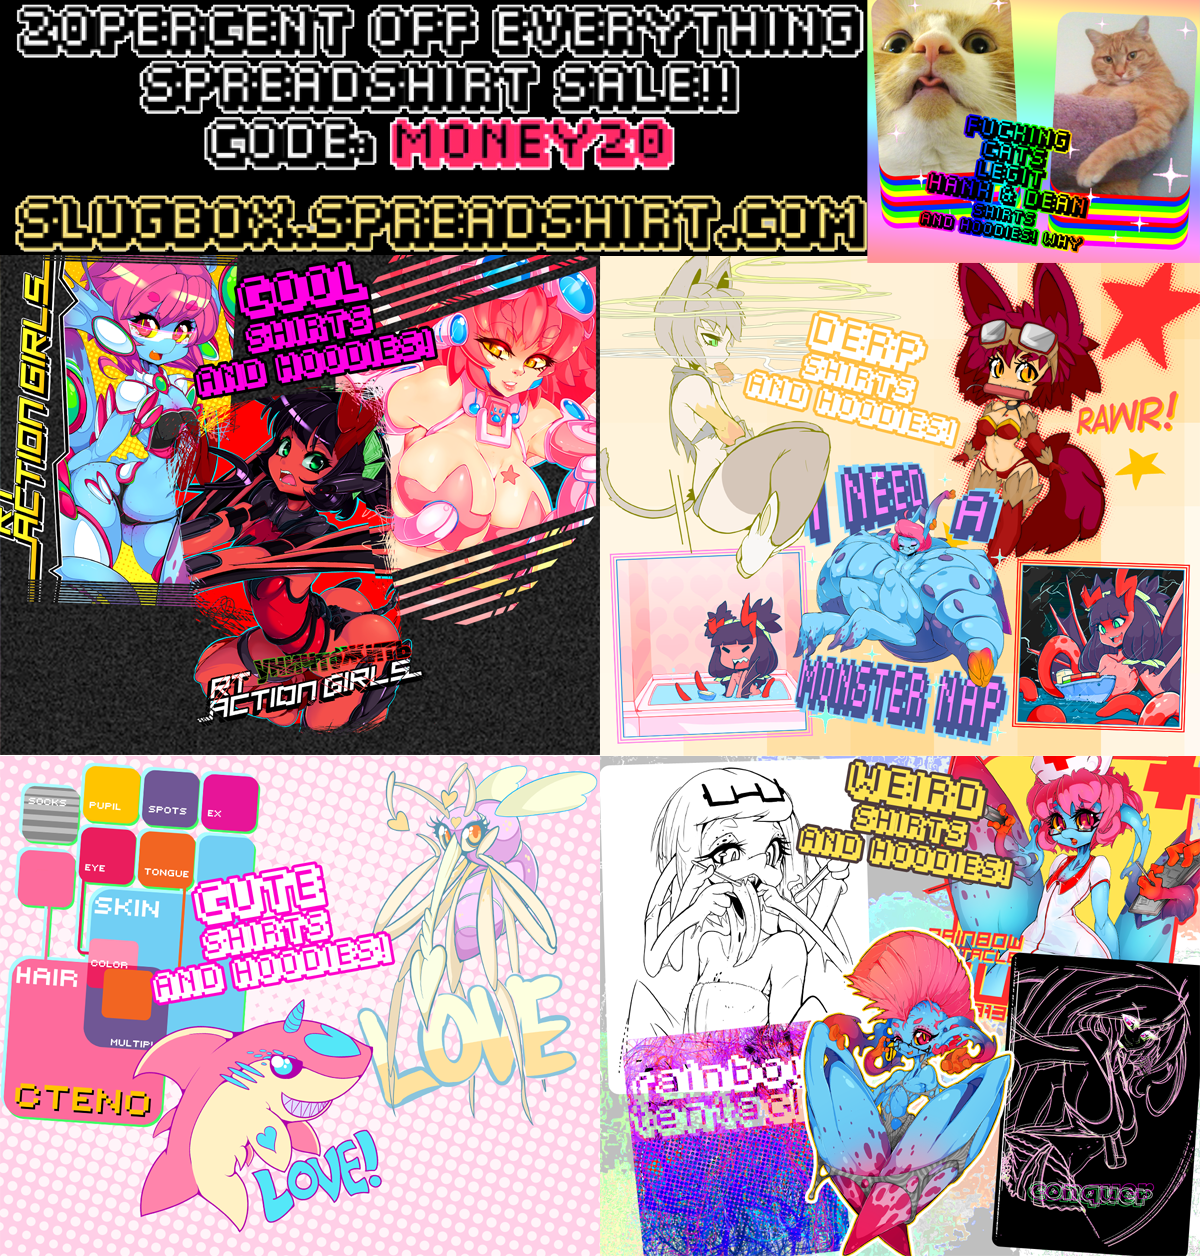 20 PERCENT OFF SHIRT AND HOODIES SALE JFC BUY ONE by Slugbox